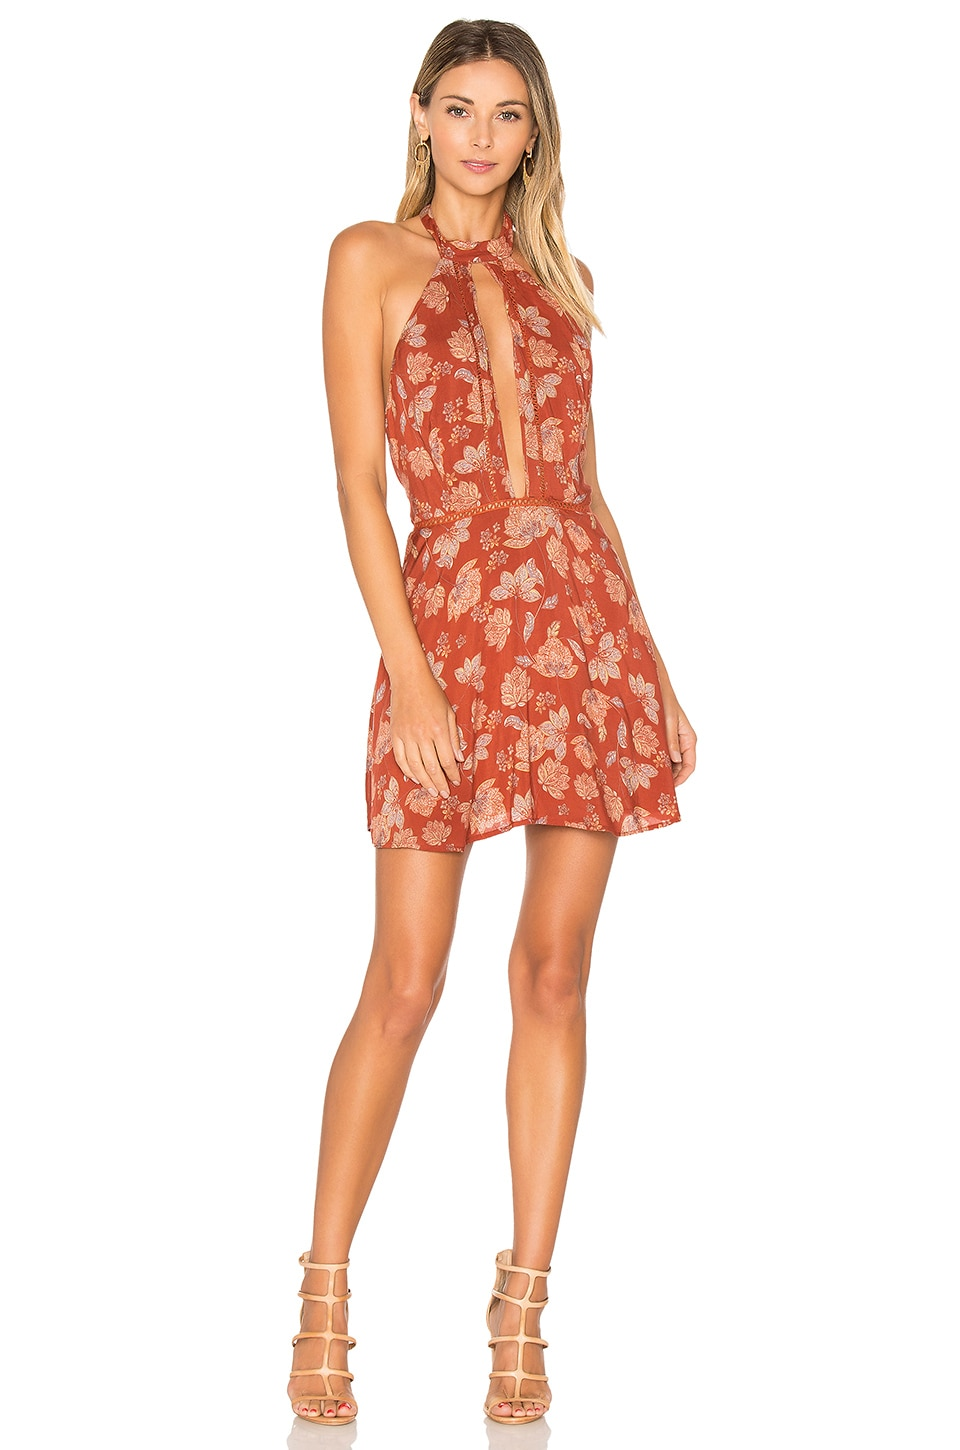 ale by alessandra x REVOLVE Bia Dress in Red Daffodil